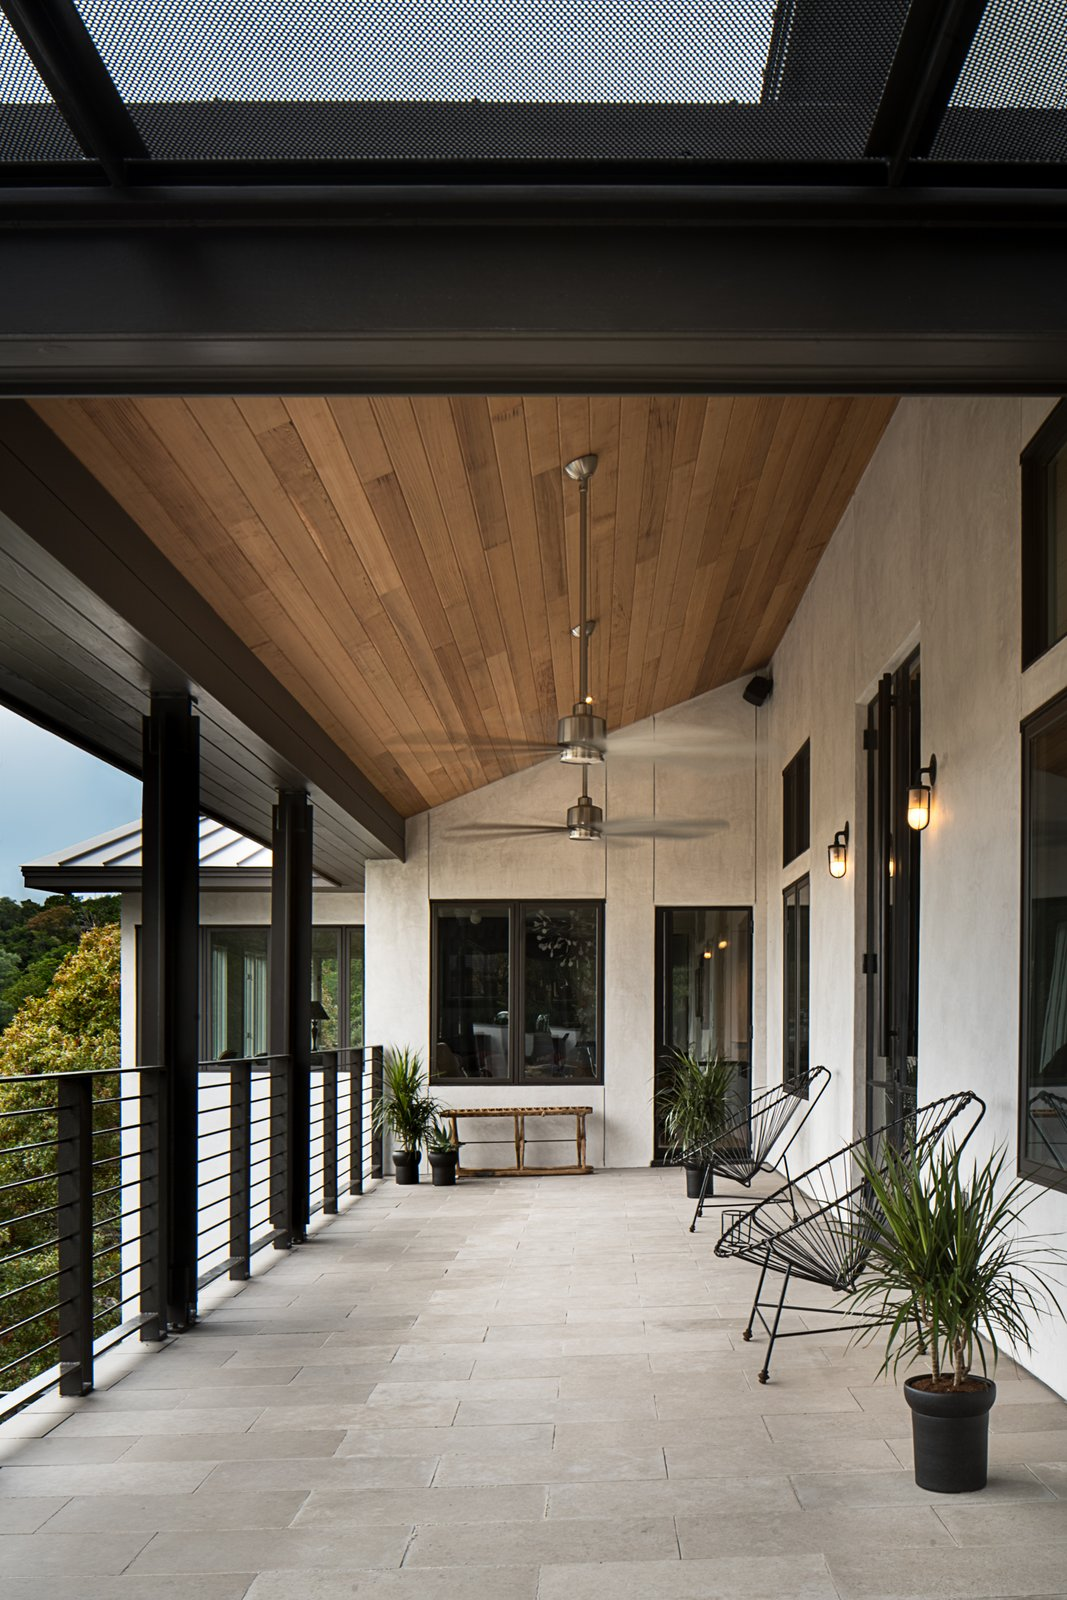 Outdoor and Stone Patio, Porch, Deck Back porch  River Garden Trail Residence by Texas Construction Company